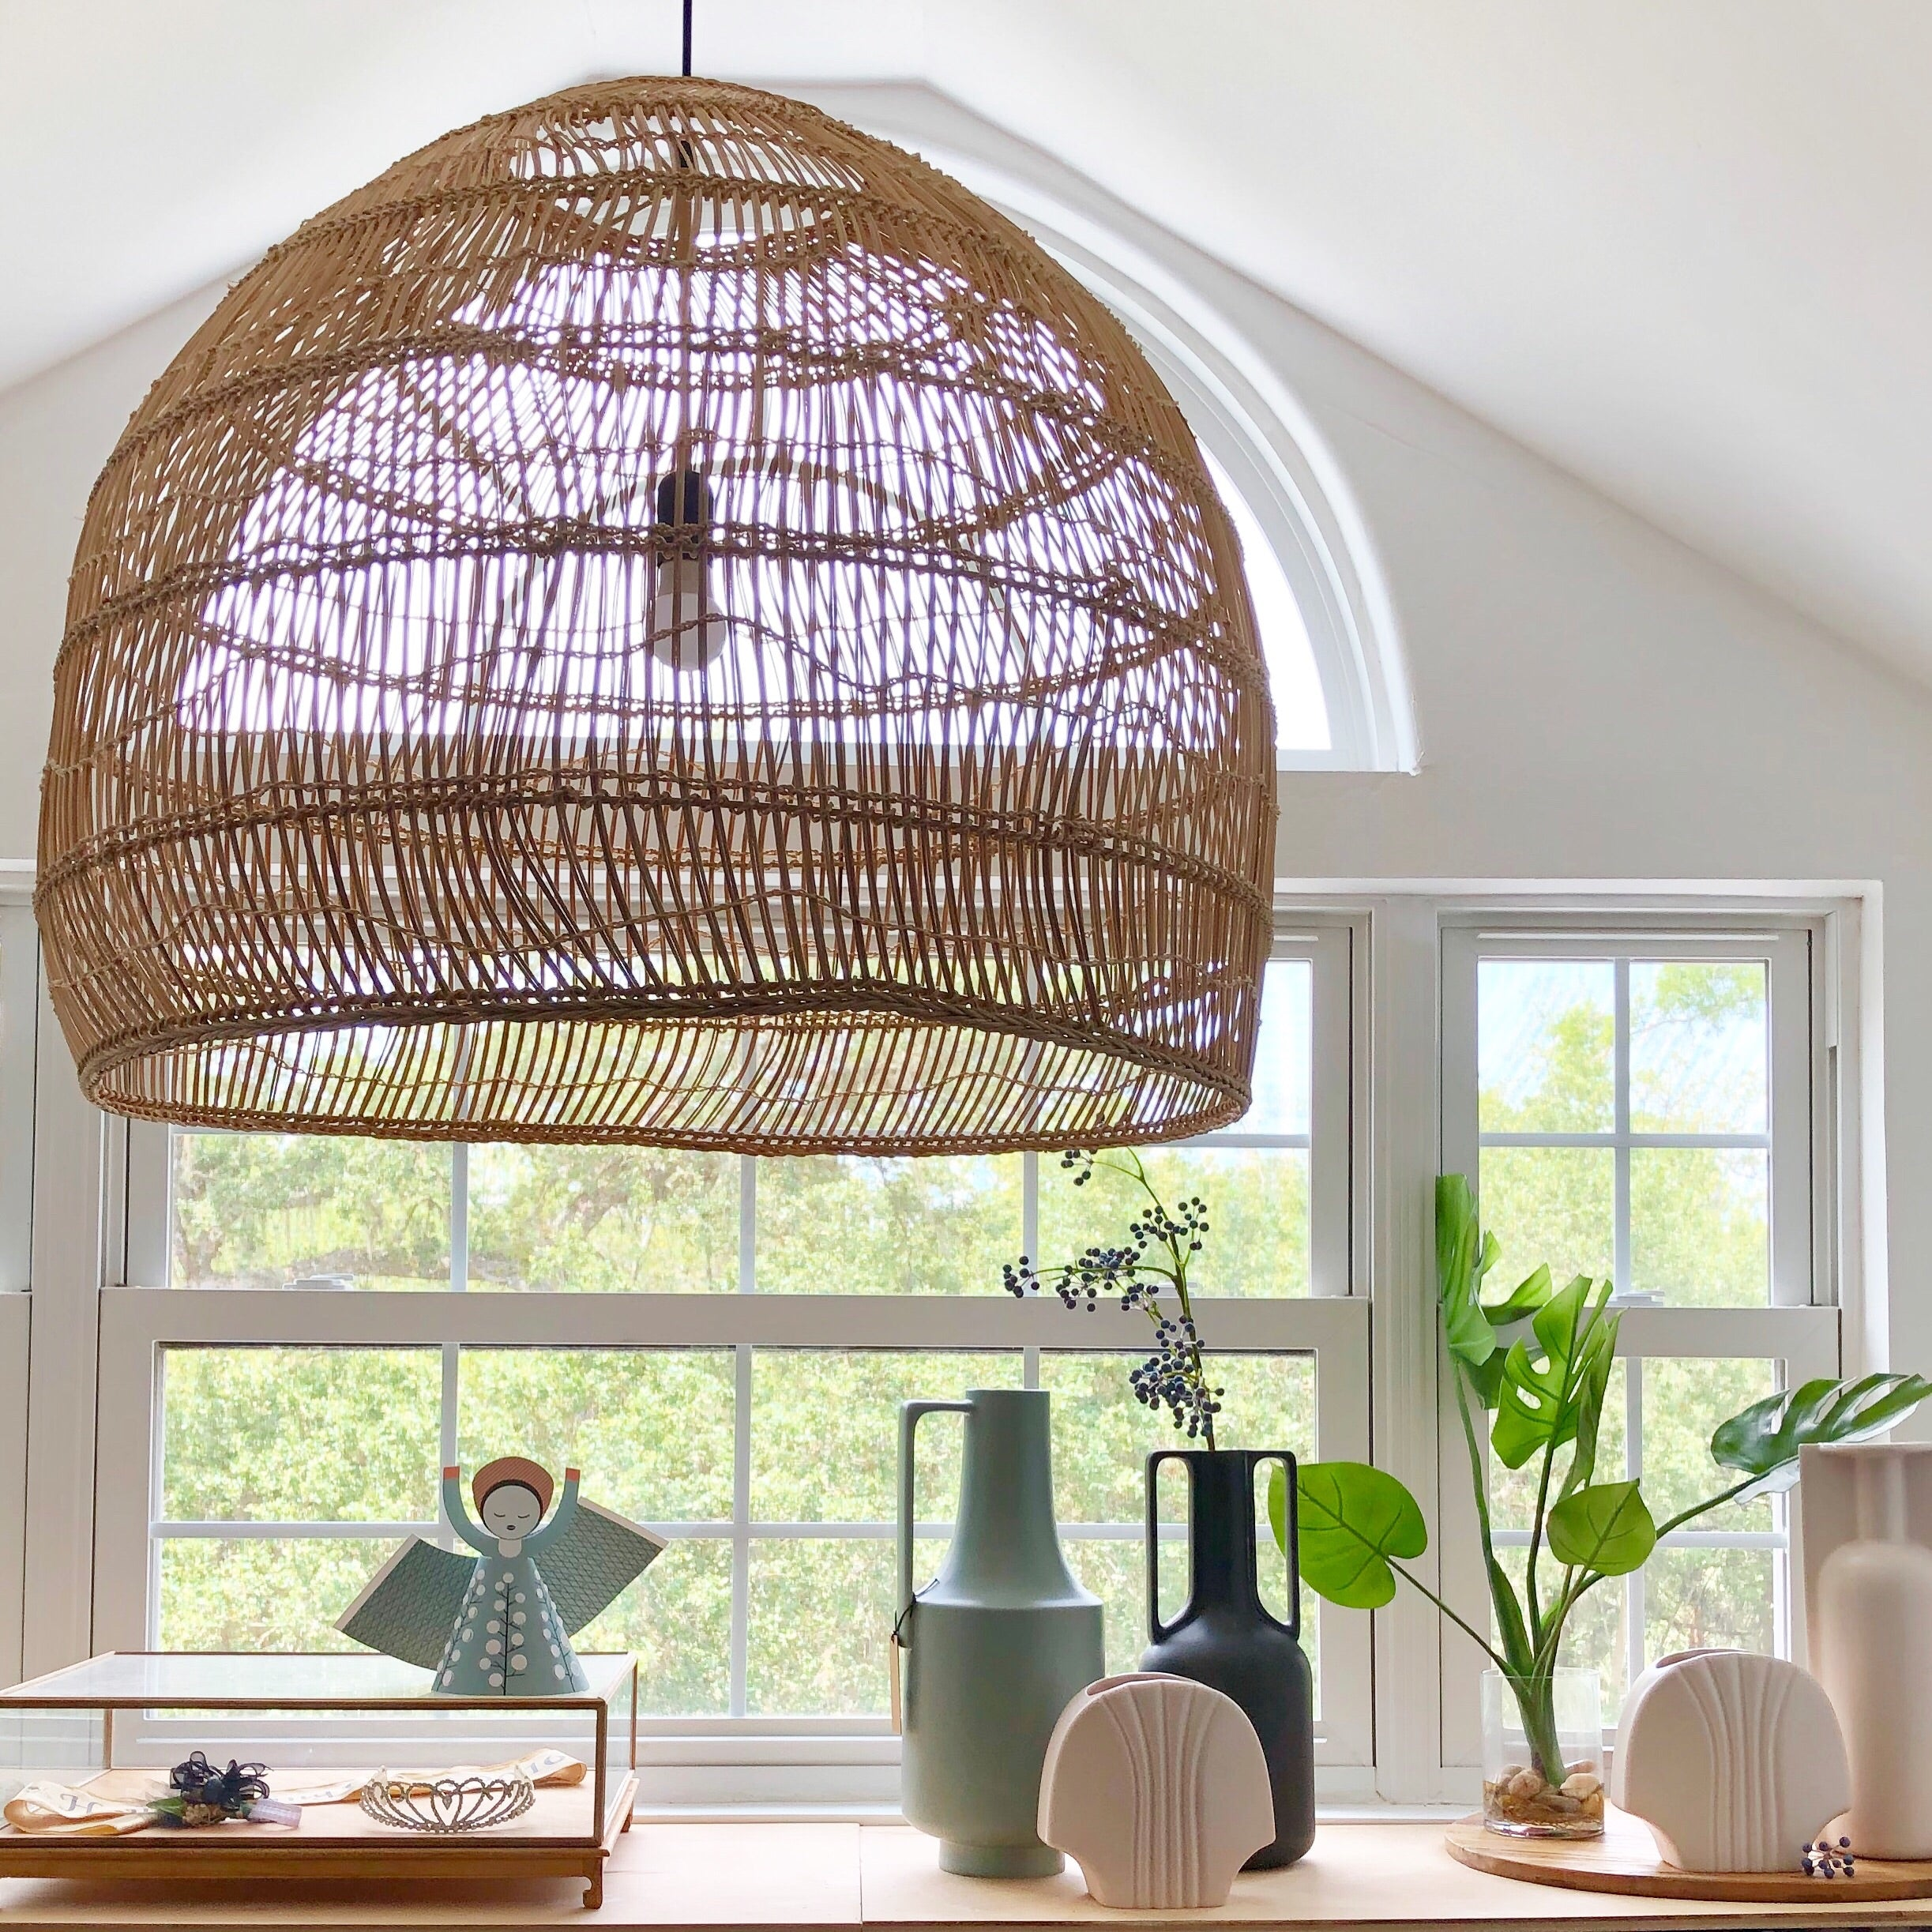 nordic style interior with big basket light and vases